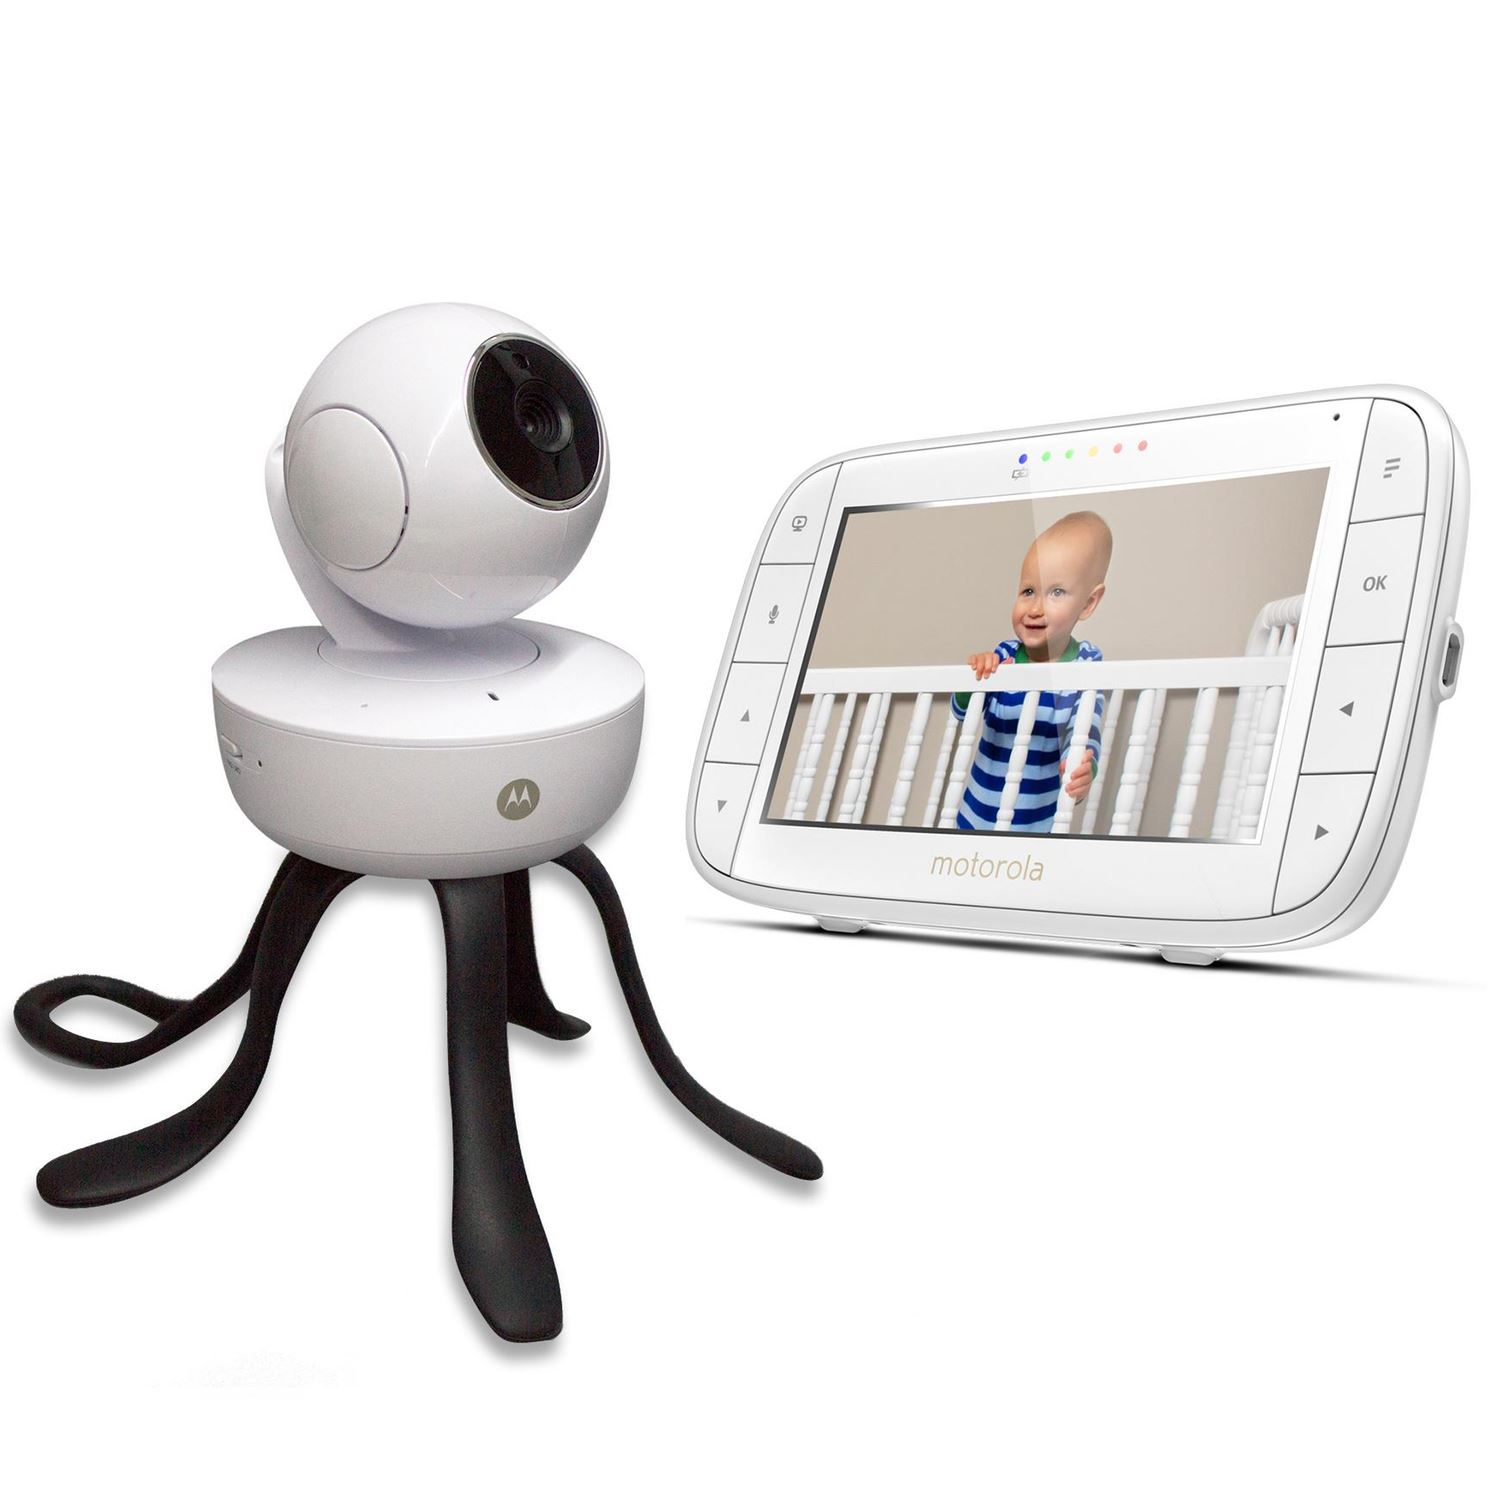 motorola wifi baby monitor. motorola mbp855 connect video baby monitor with portable wi-fi remote access camera, 5 inch wifi r